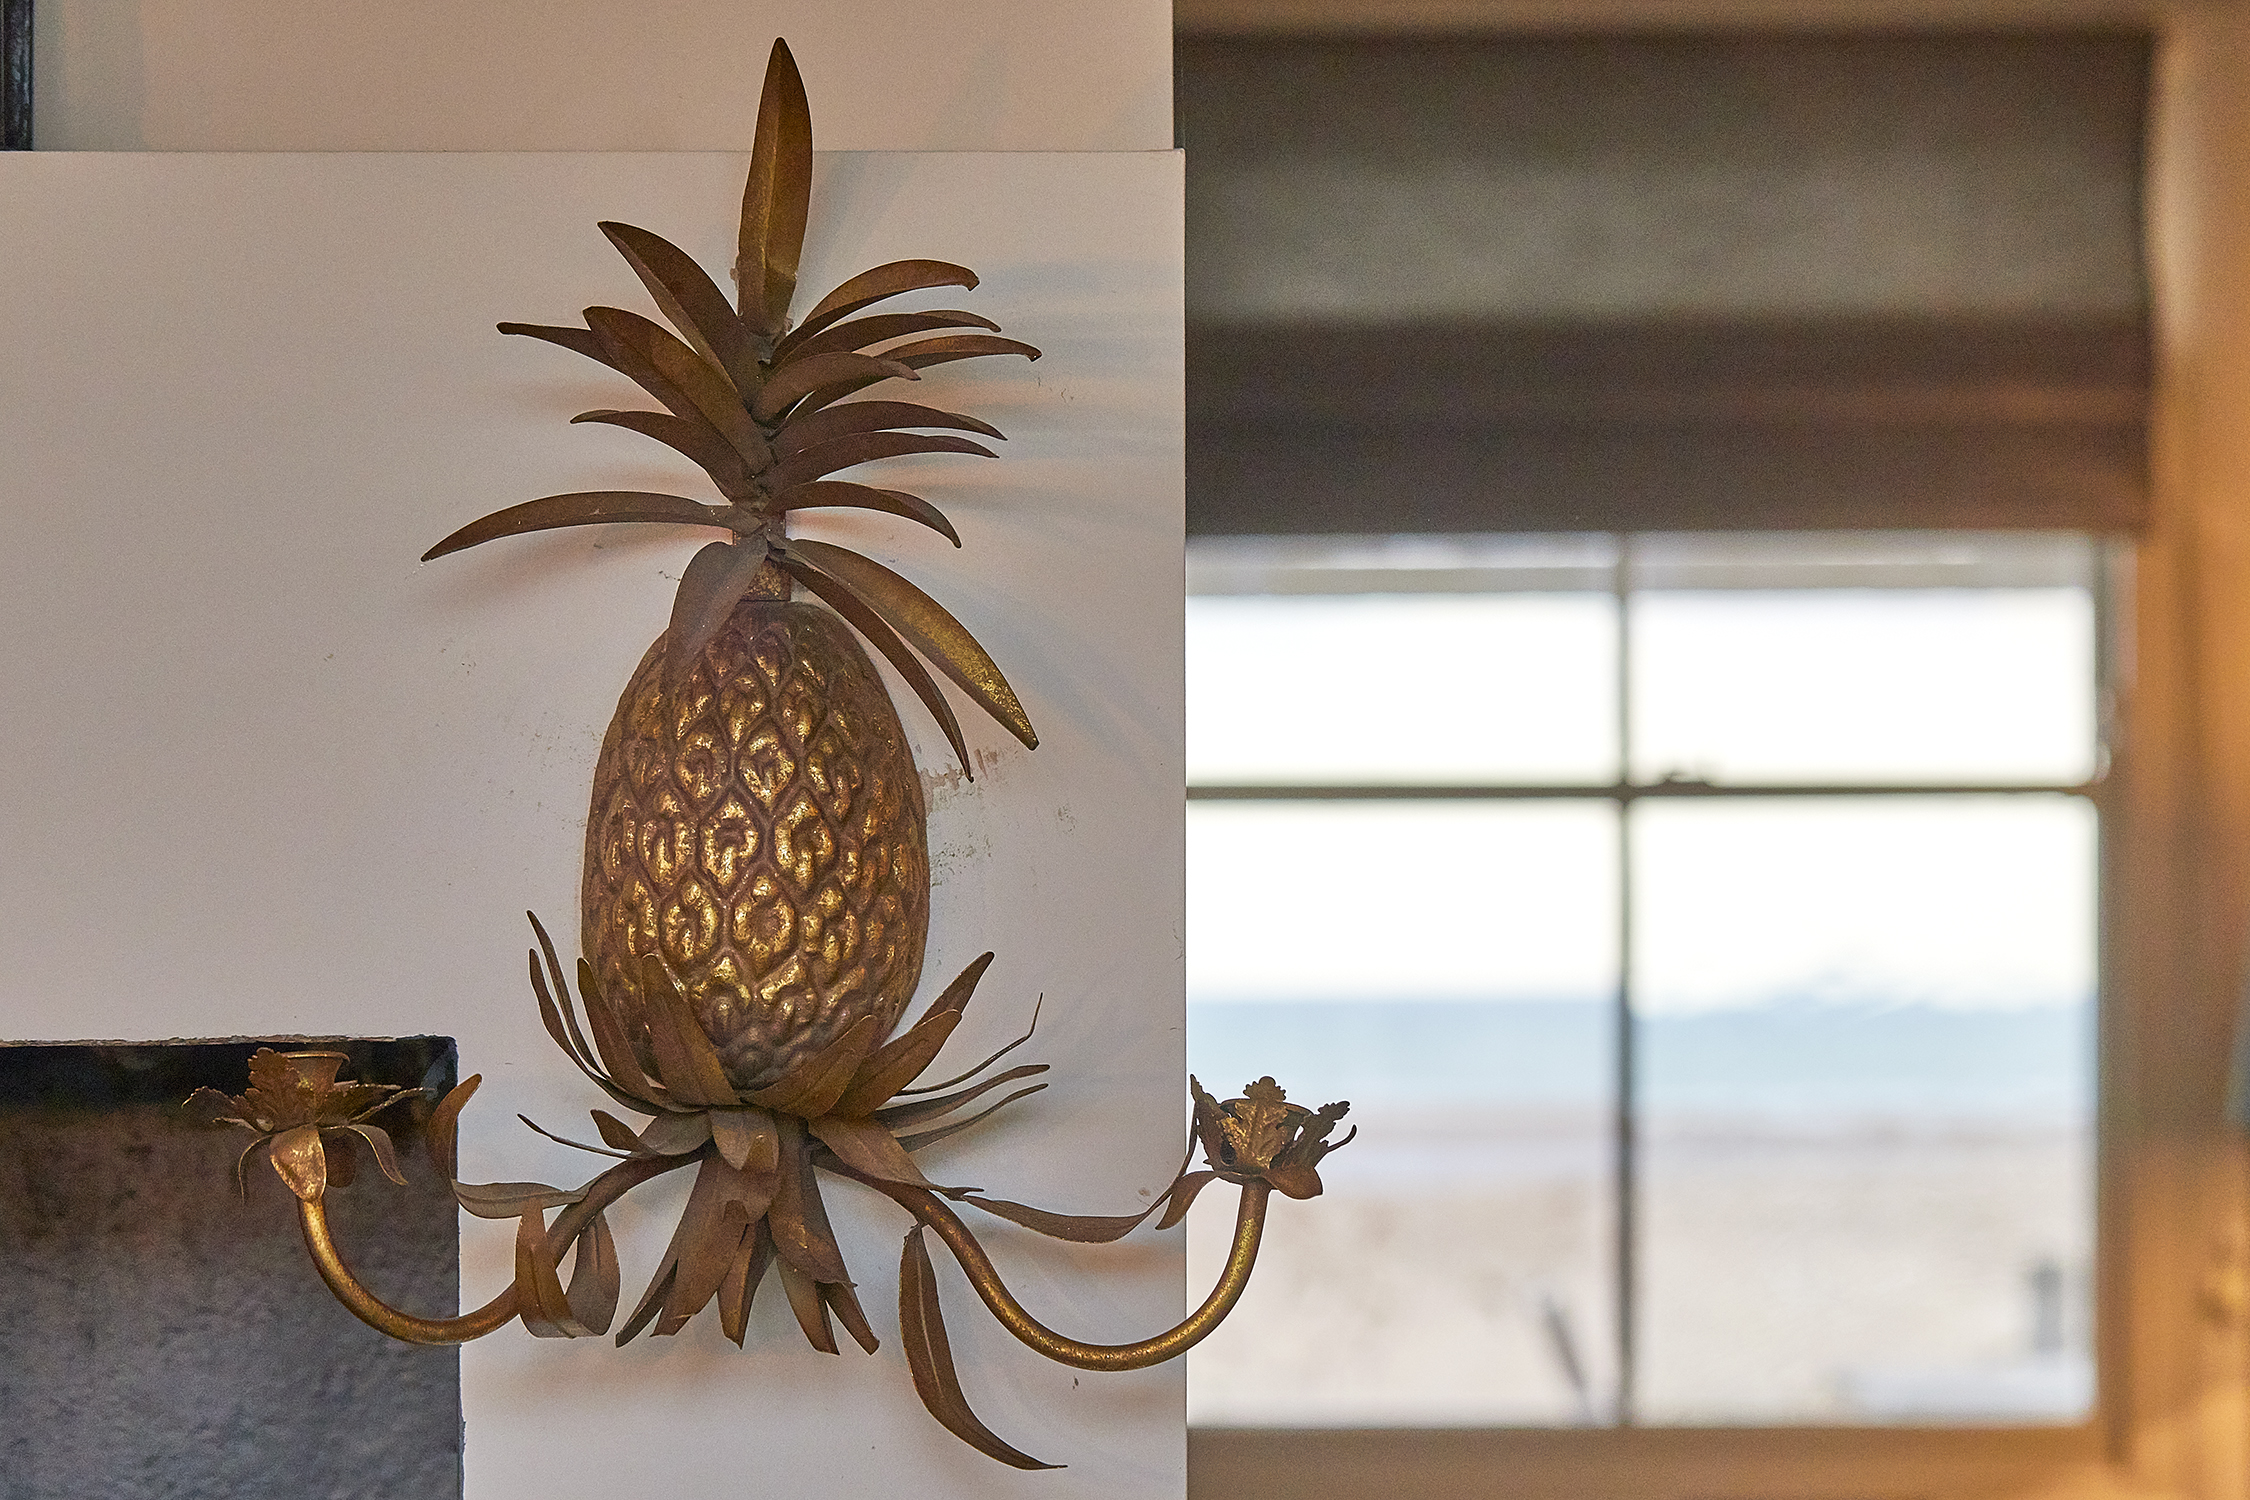 The Bolthole on Pagham Beach - check out the pineapples!